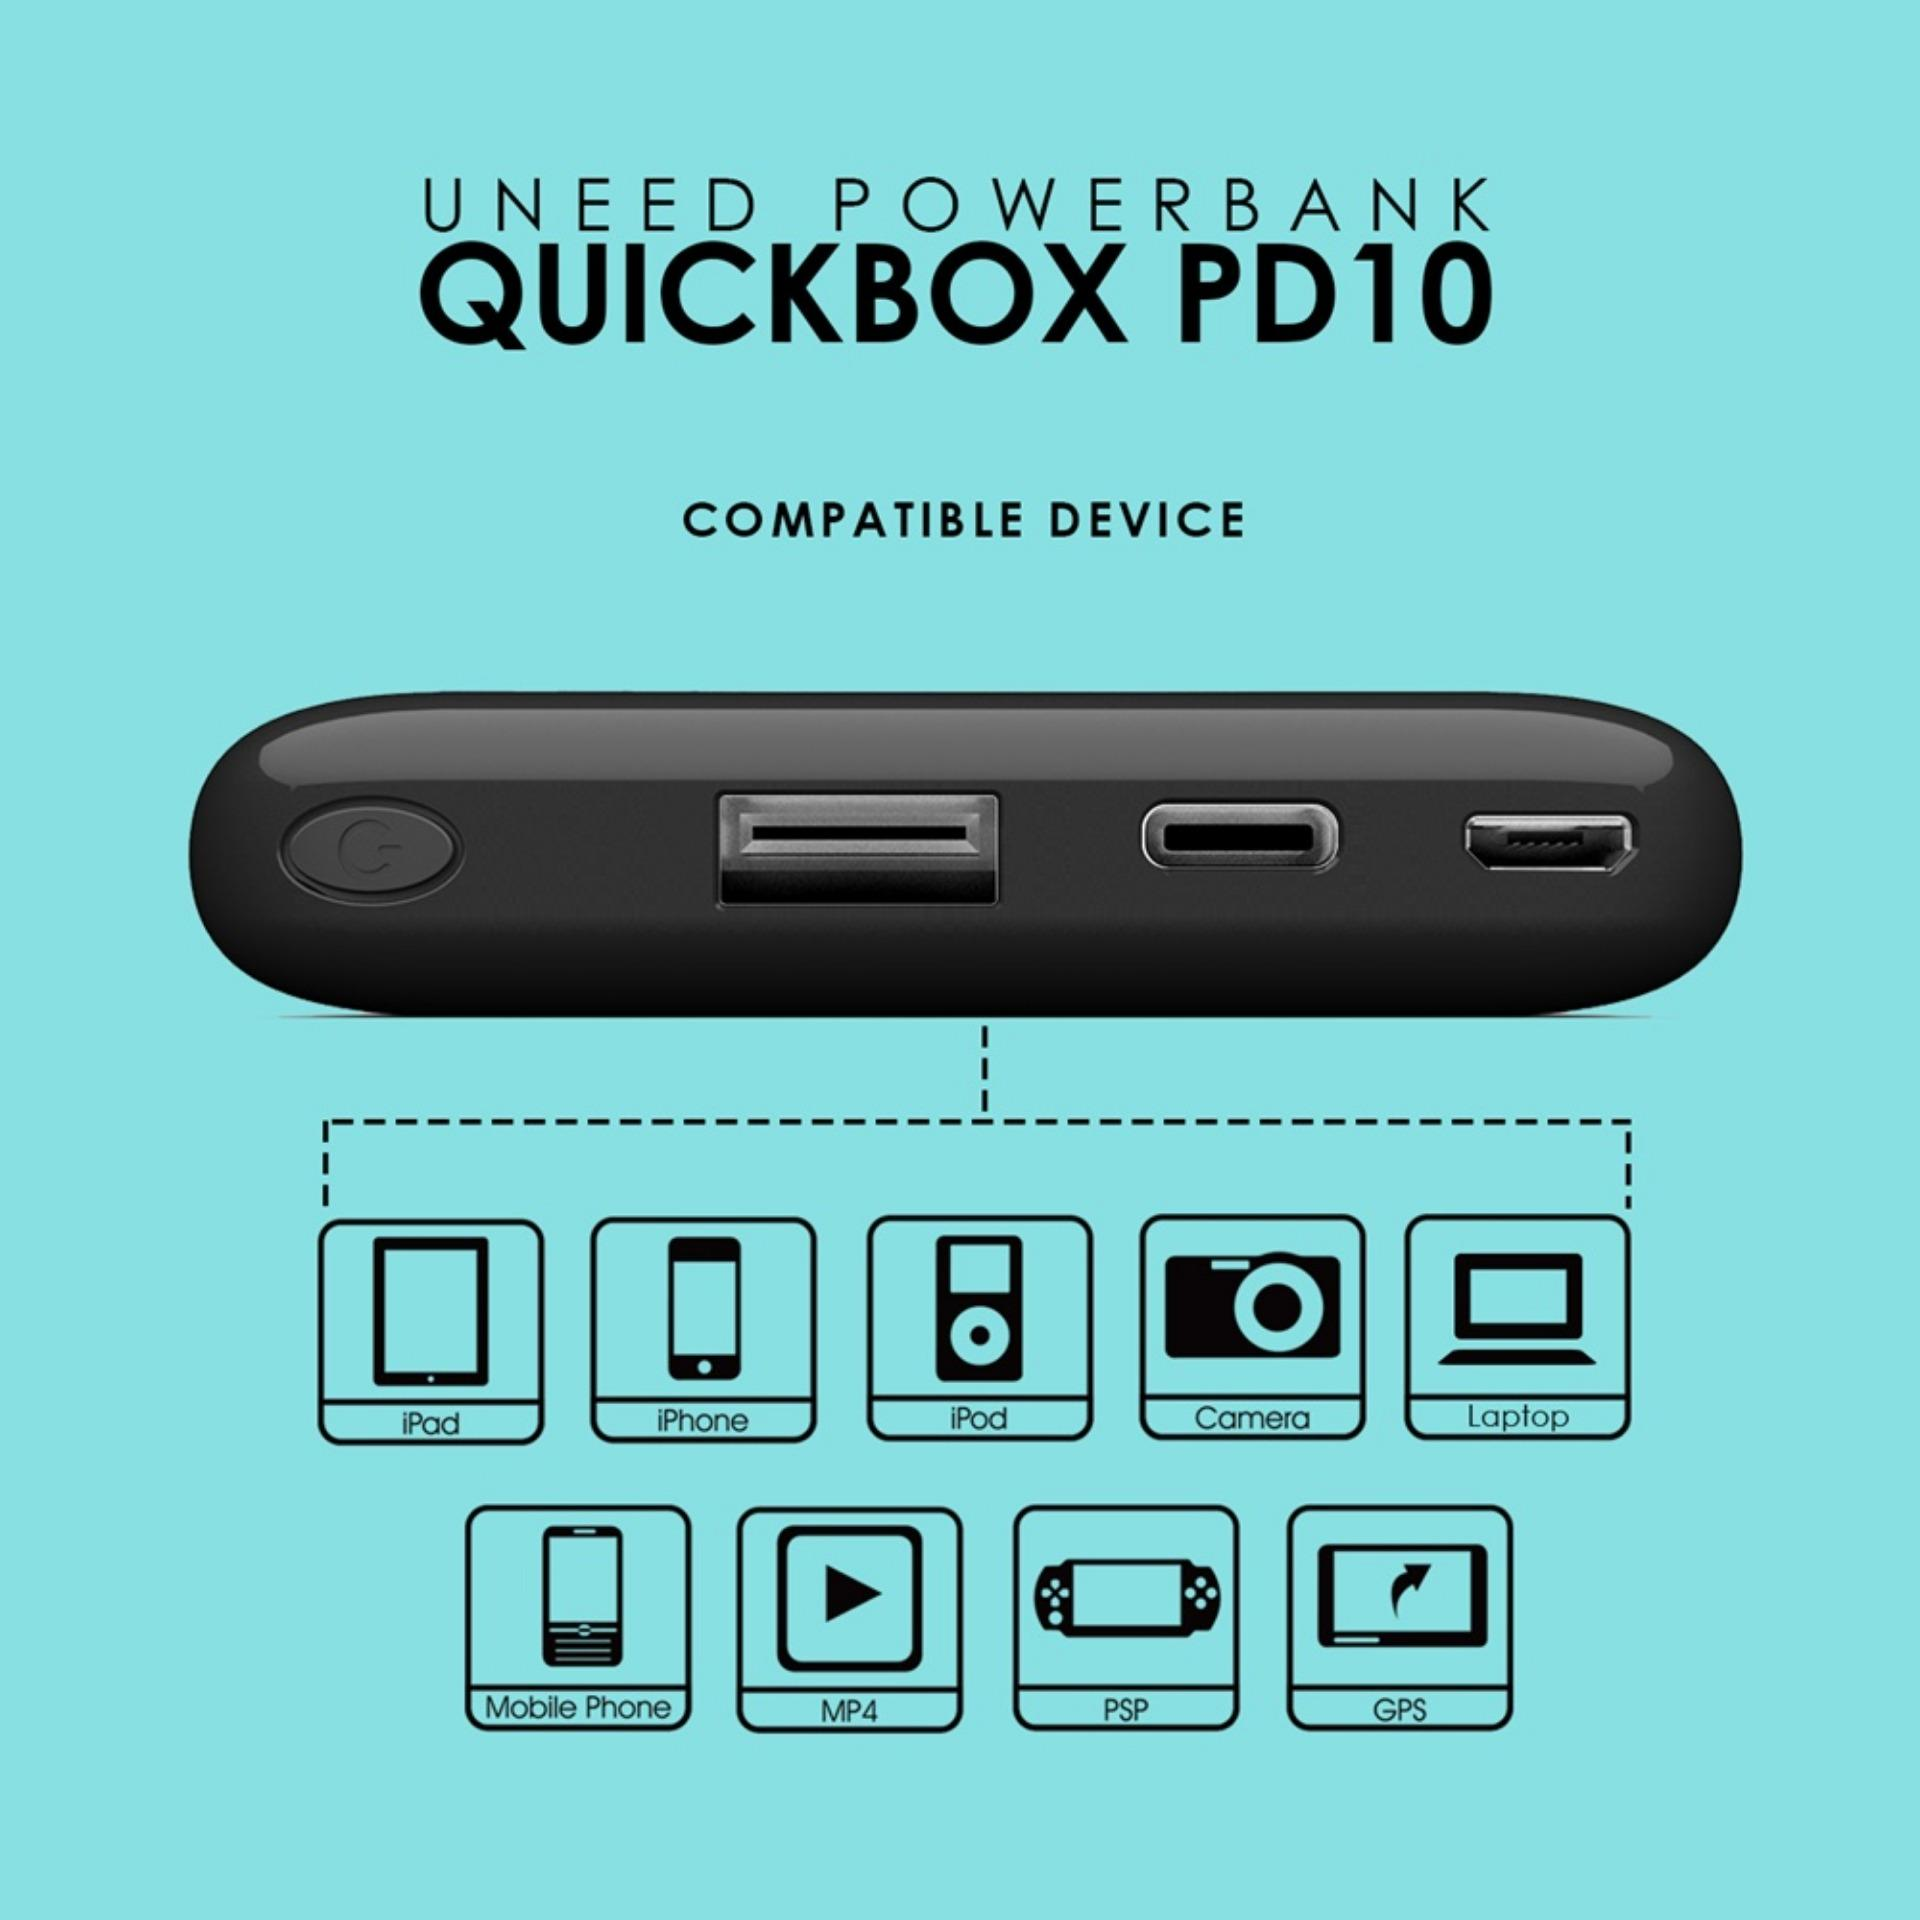 Uneed Powerbank 12000mah Qualcomm Quick Charge 3 0 Quickbox Dual Usb 30 12 Black Pd10 10000mah With Power Delivery